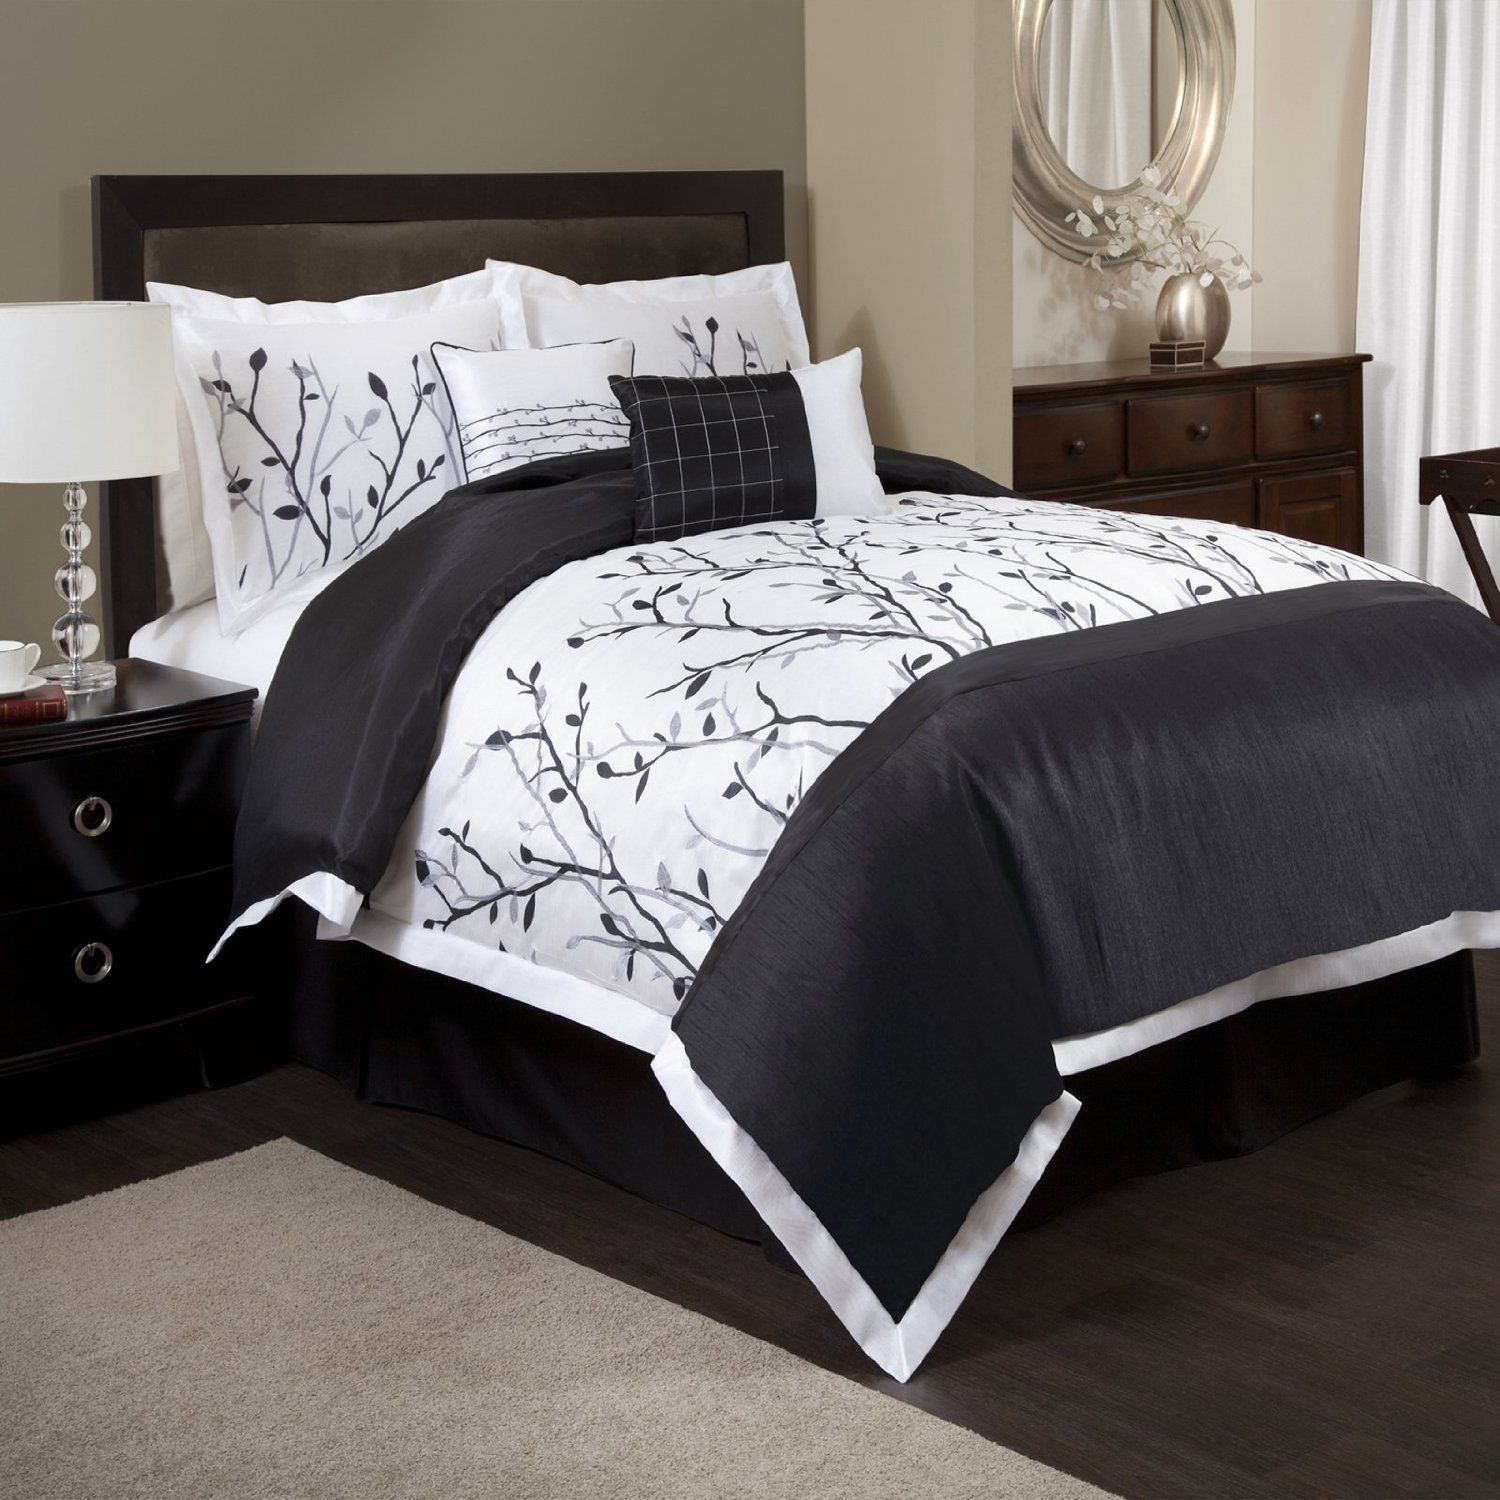 Lush Decor 6Piece Tree Branch Comforter Set